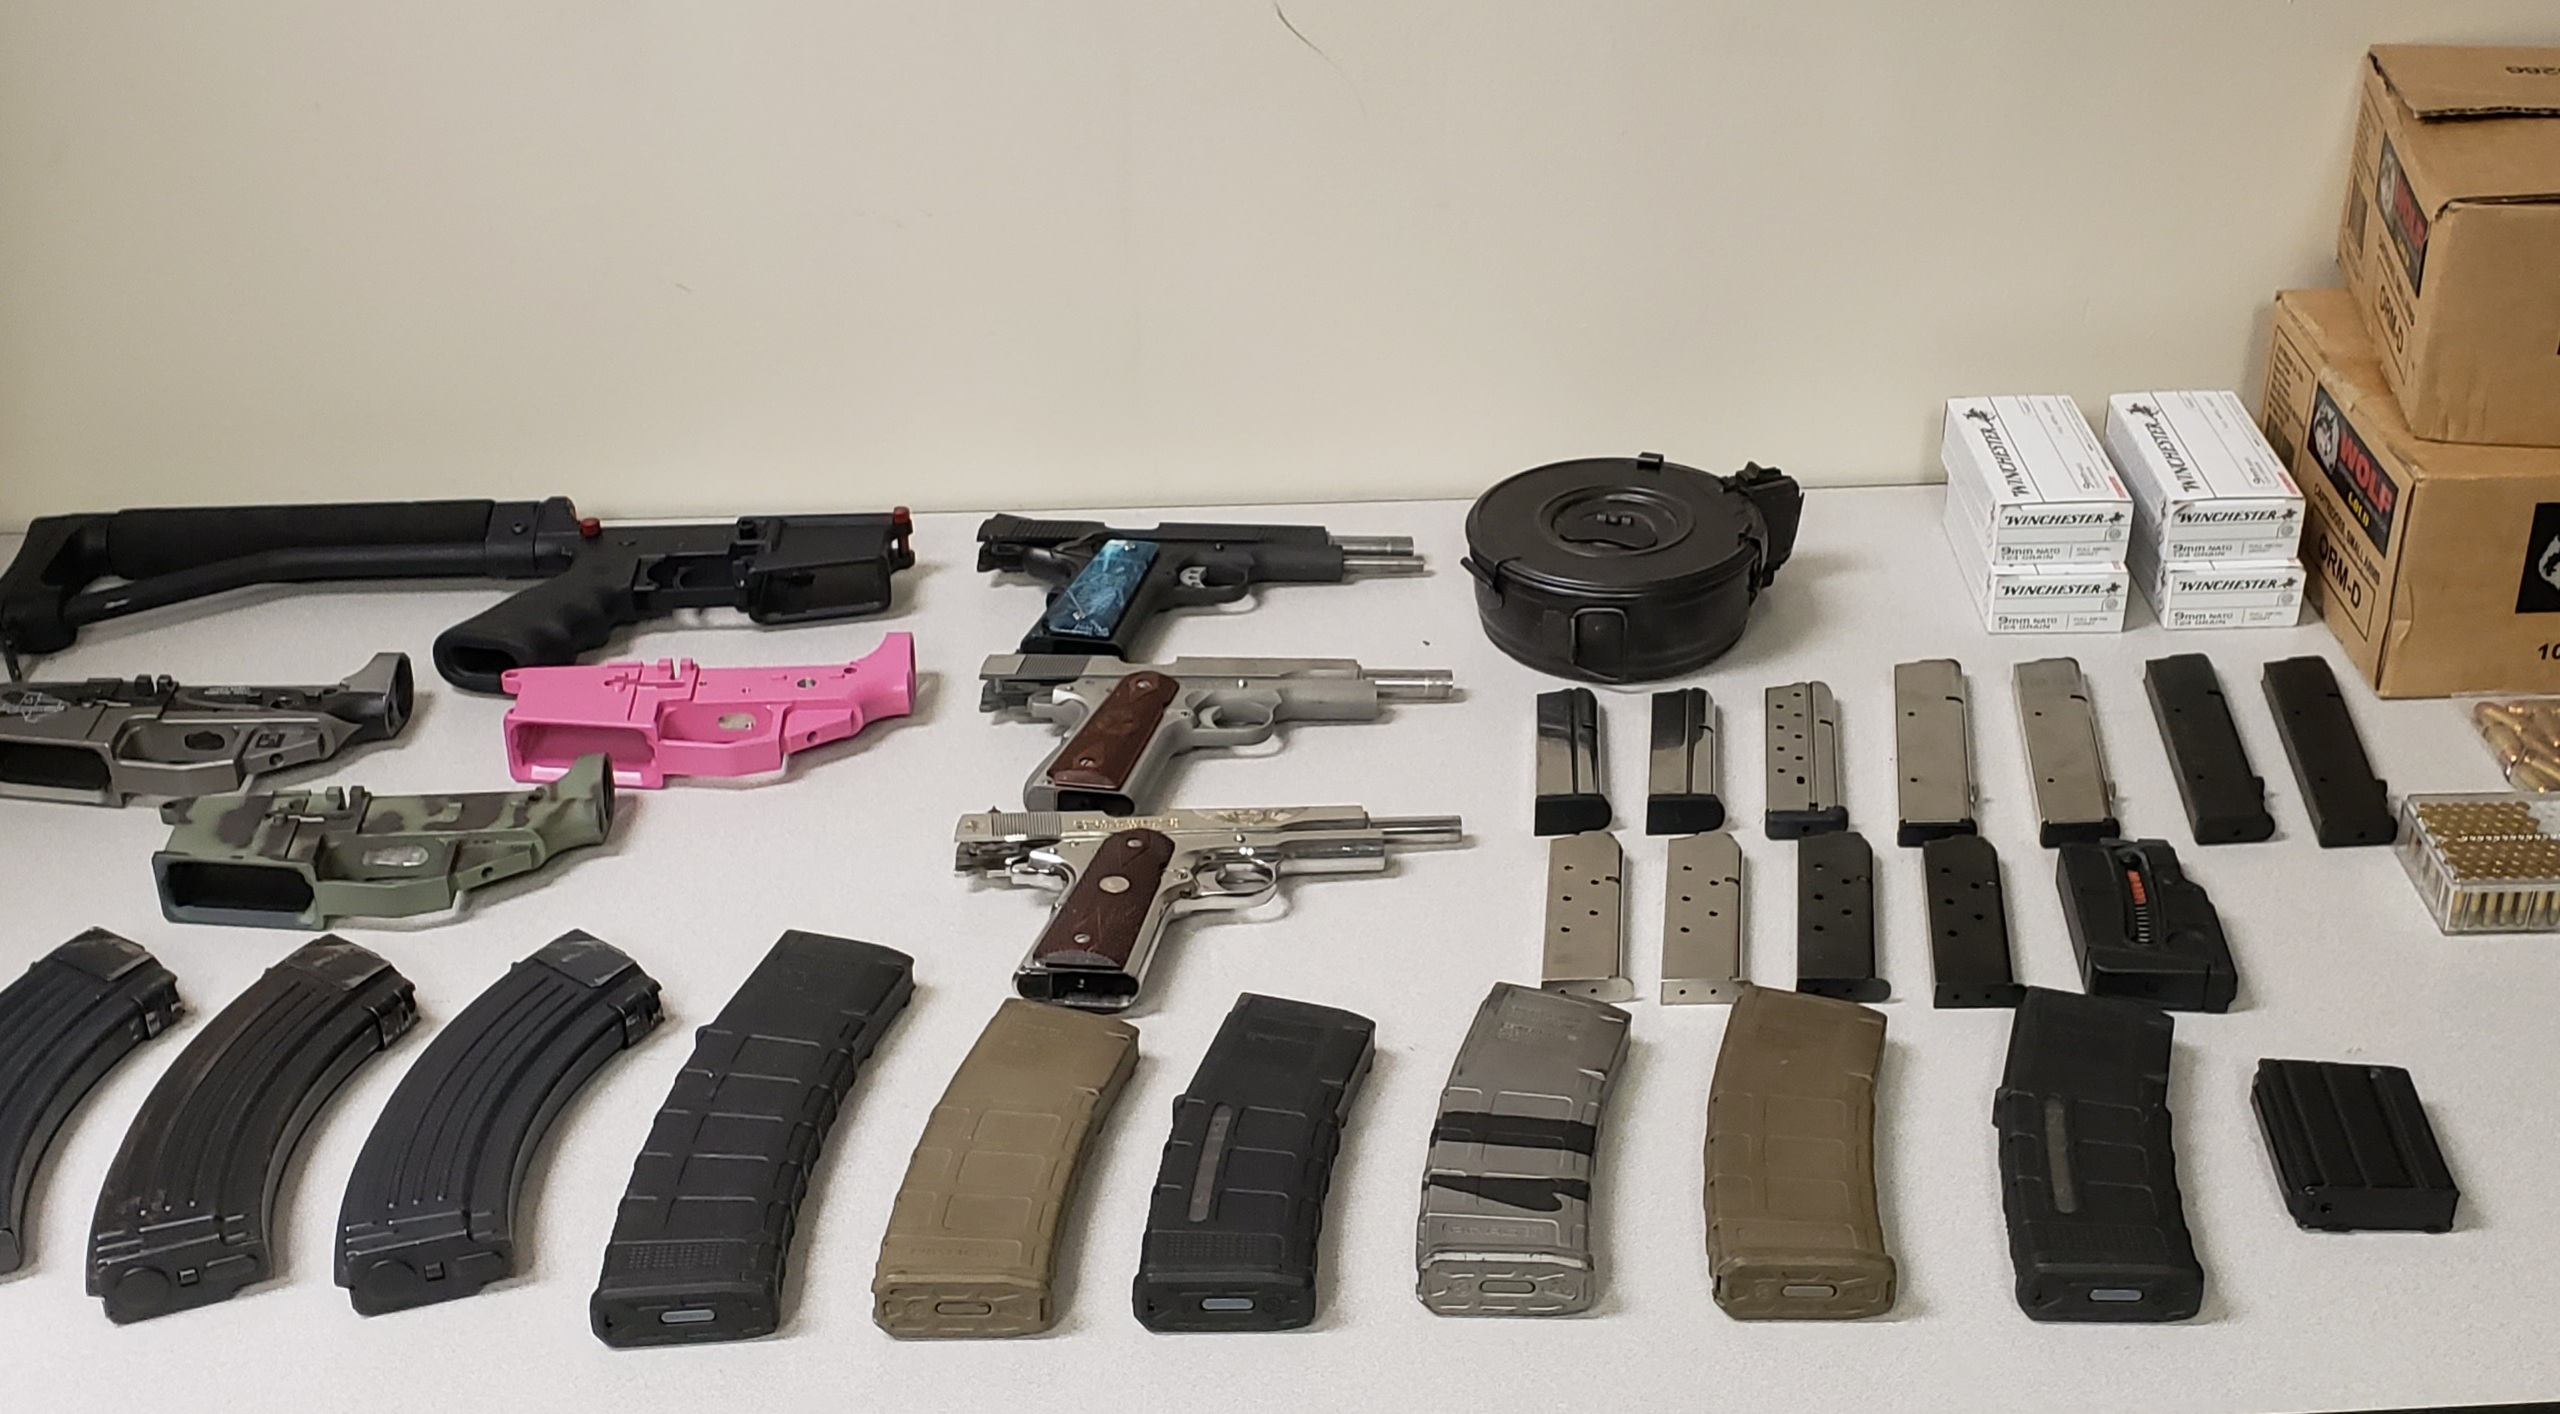 The California Attorney General's Office released this photo of firearms and ammunition seized from Rene Navas of Lancaster on May 11, 2020.